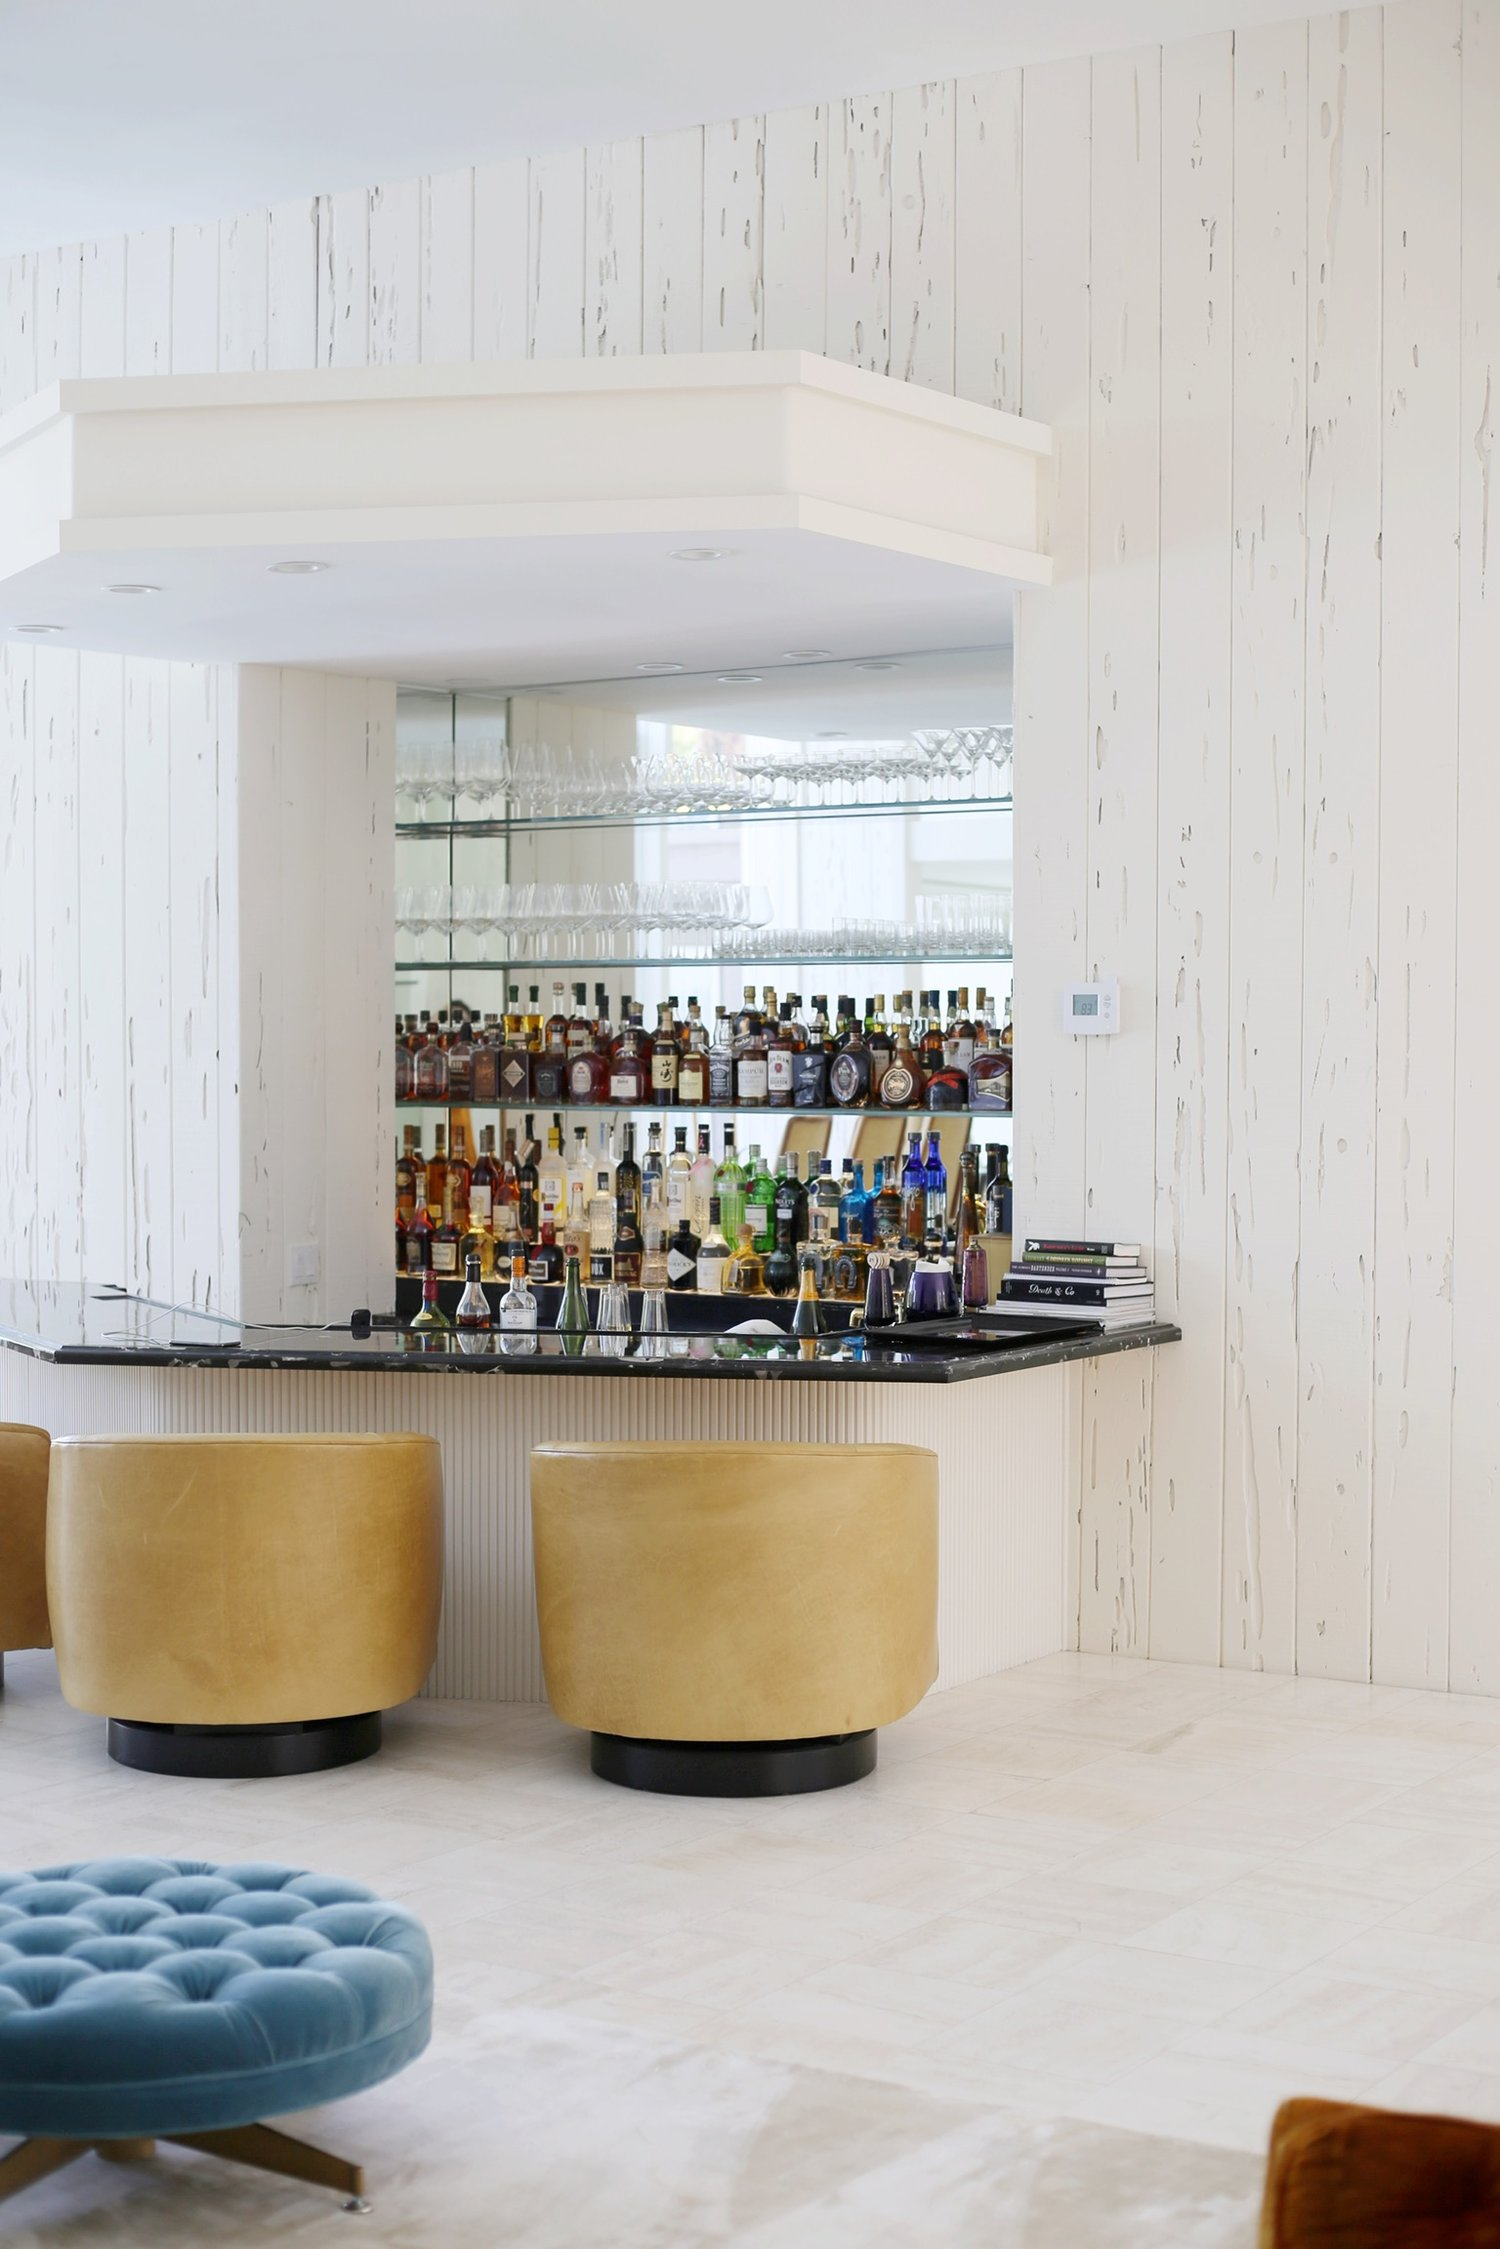 Classical mid-century bar by Jeff Vance with original bar chairs by Milo Baughman .